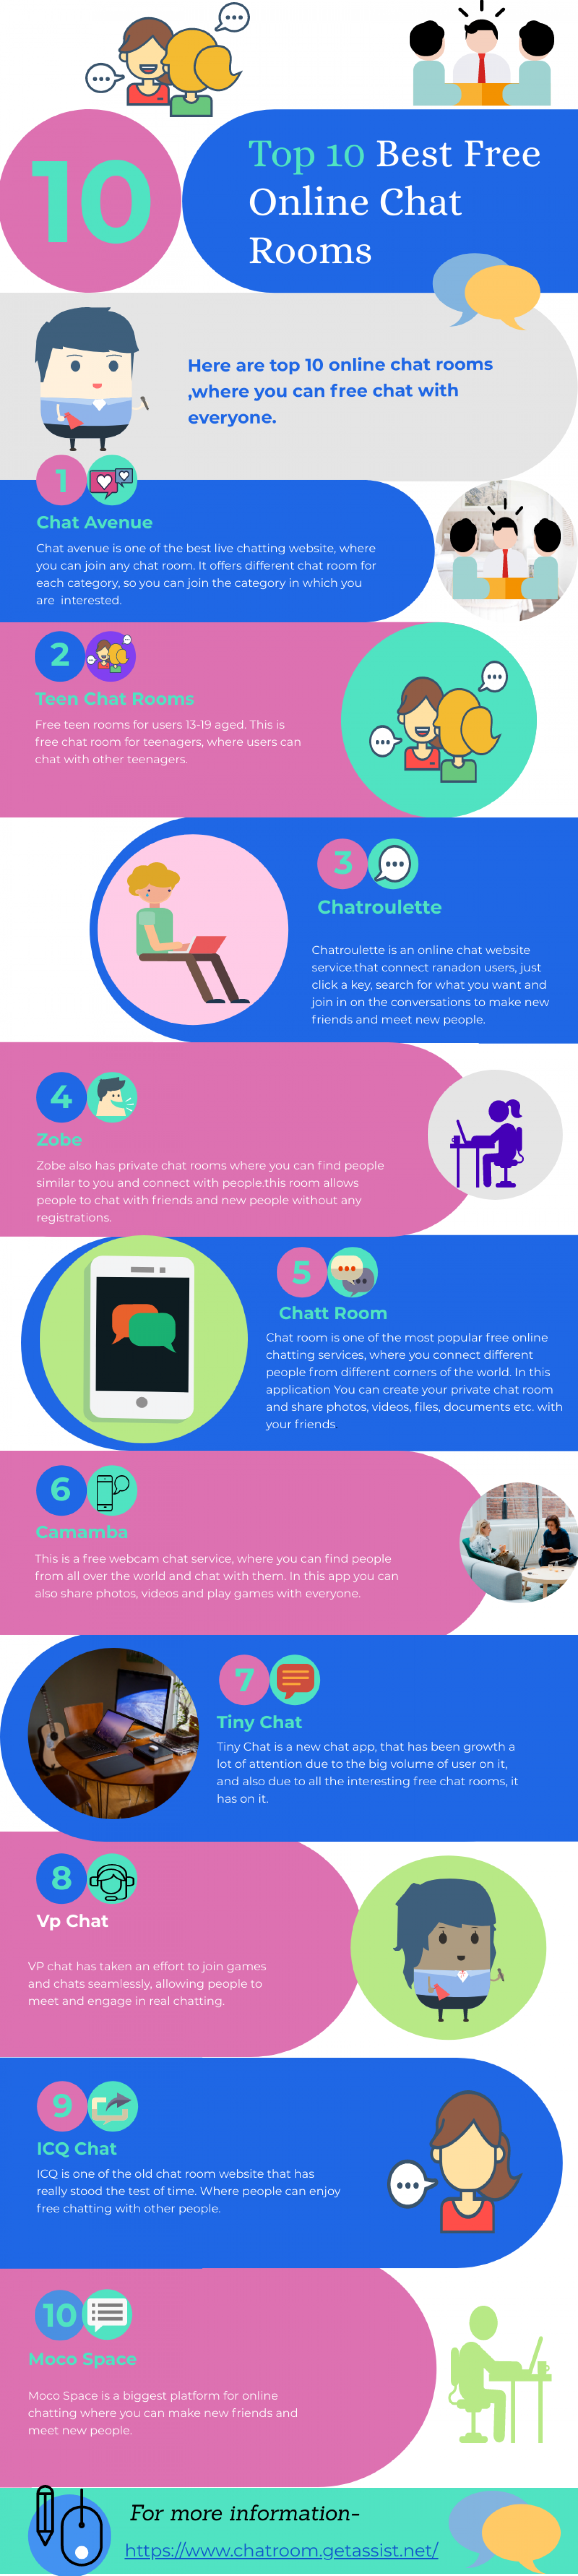 Top 10 Best Free Online Chat Rooms Infographic